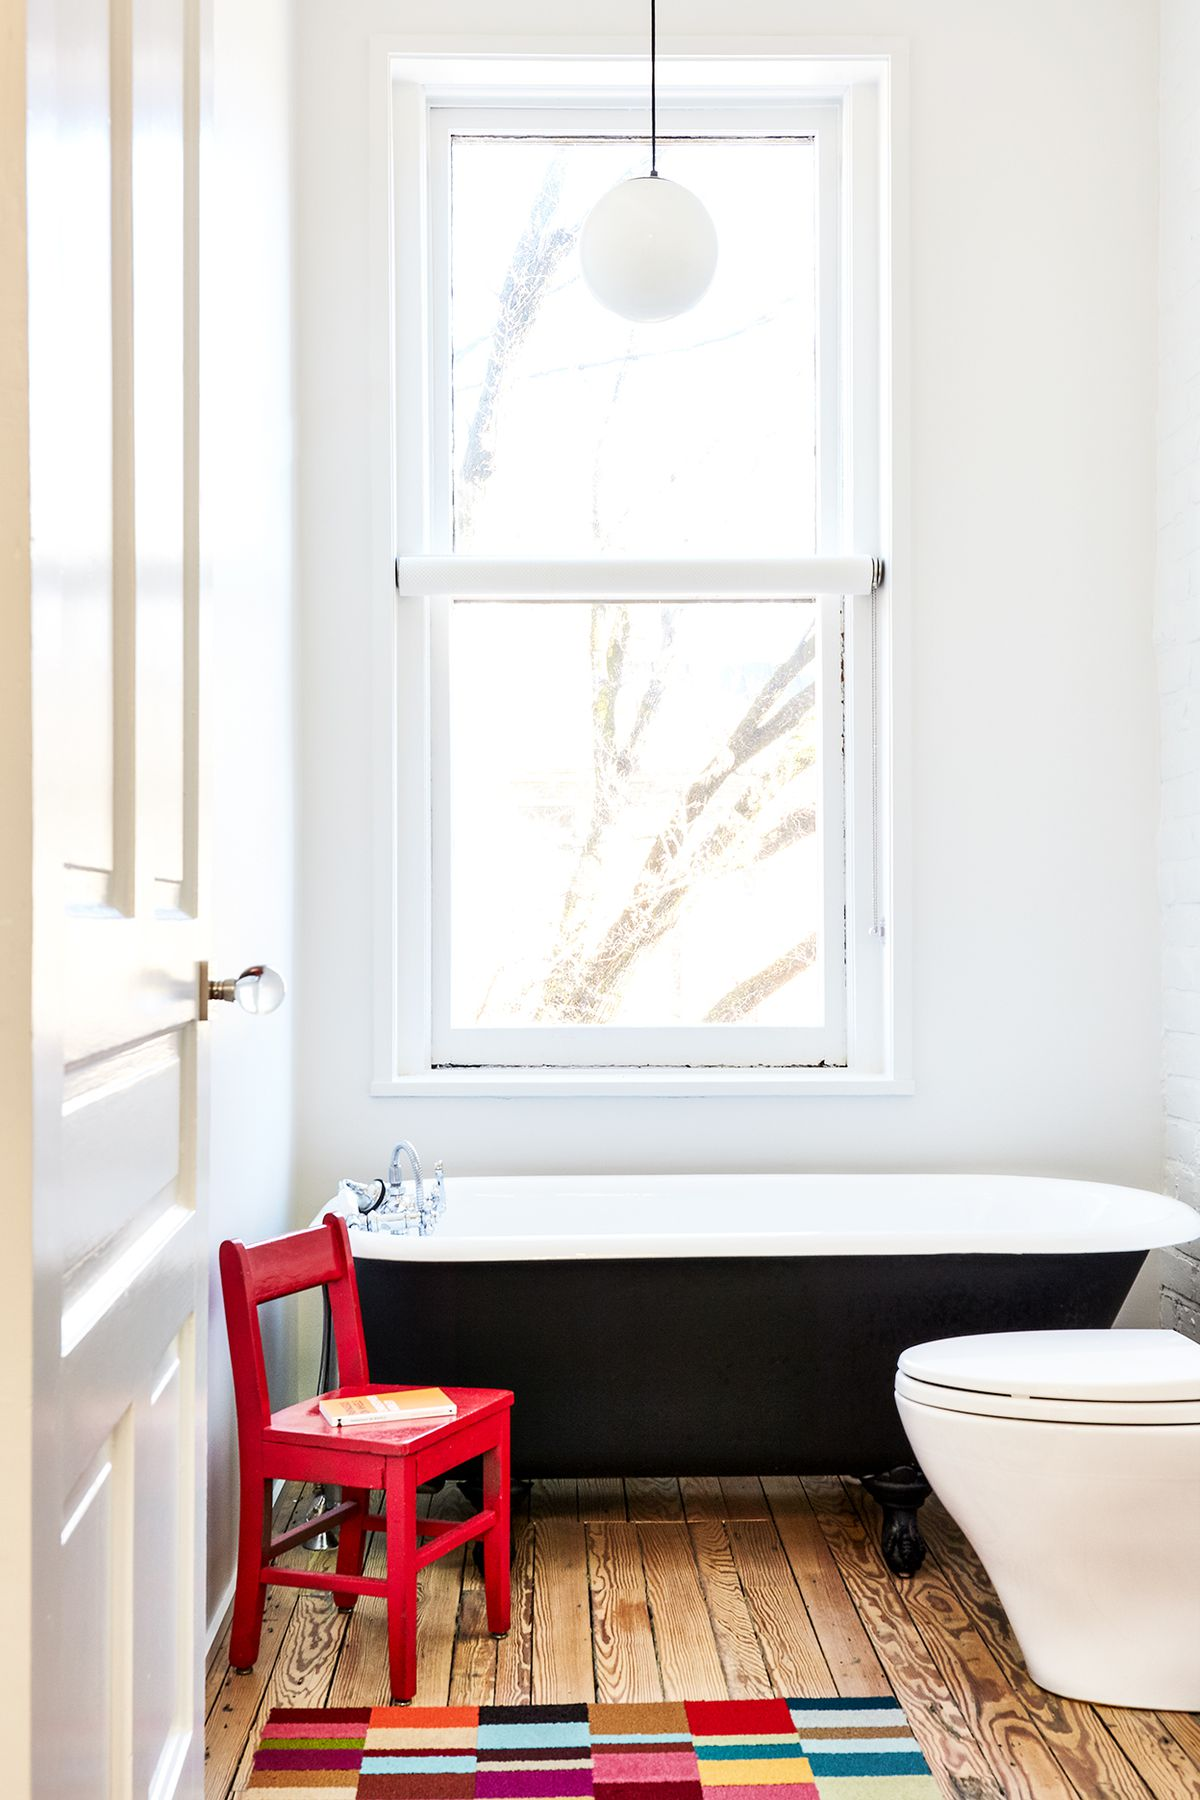 A bathroom. There is a bathtub with a black exterior and white interior. A red chair is next to the tub. There is a large window over the tub. The walls are painted white.